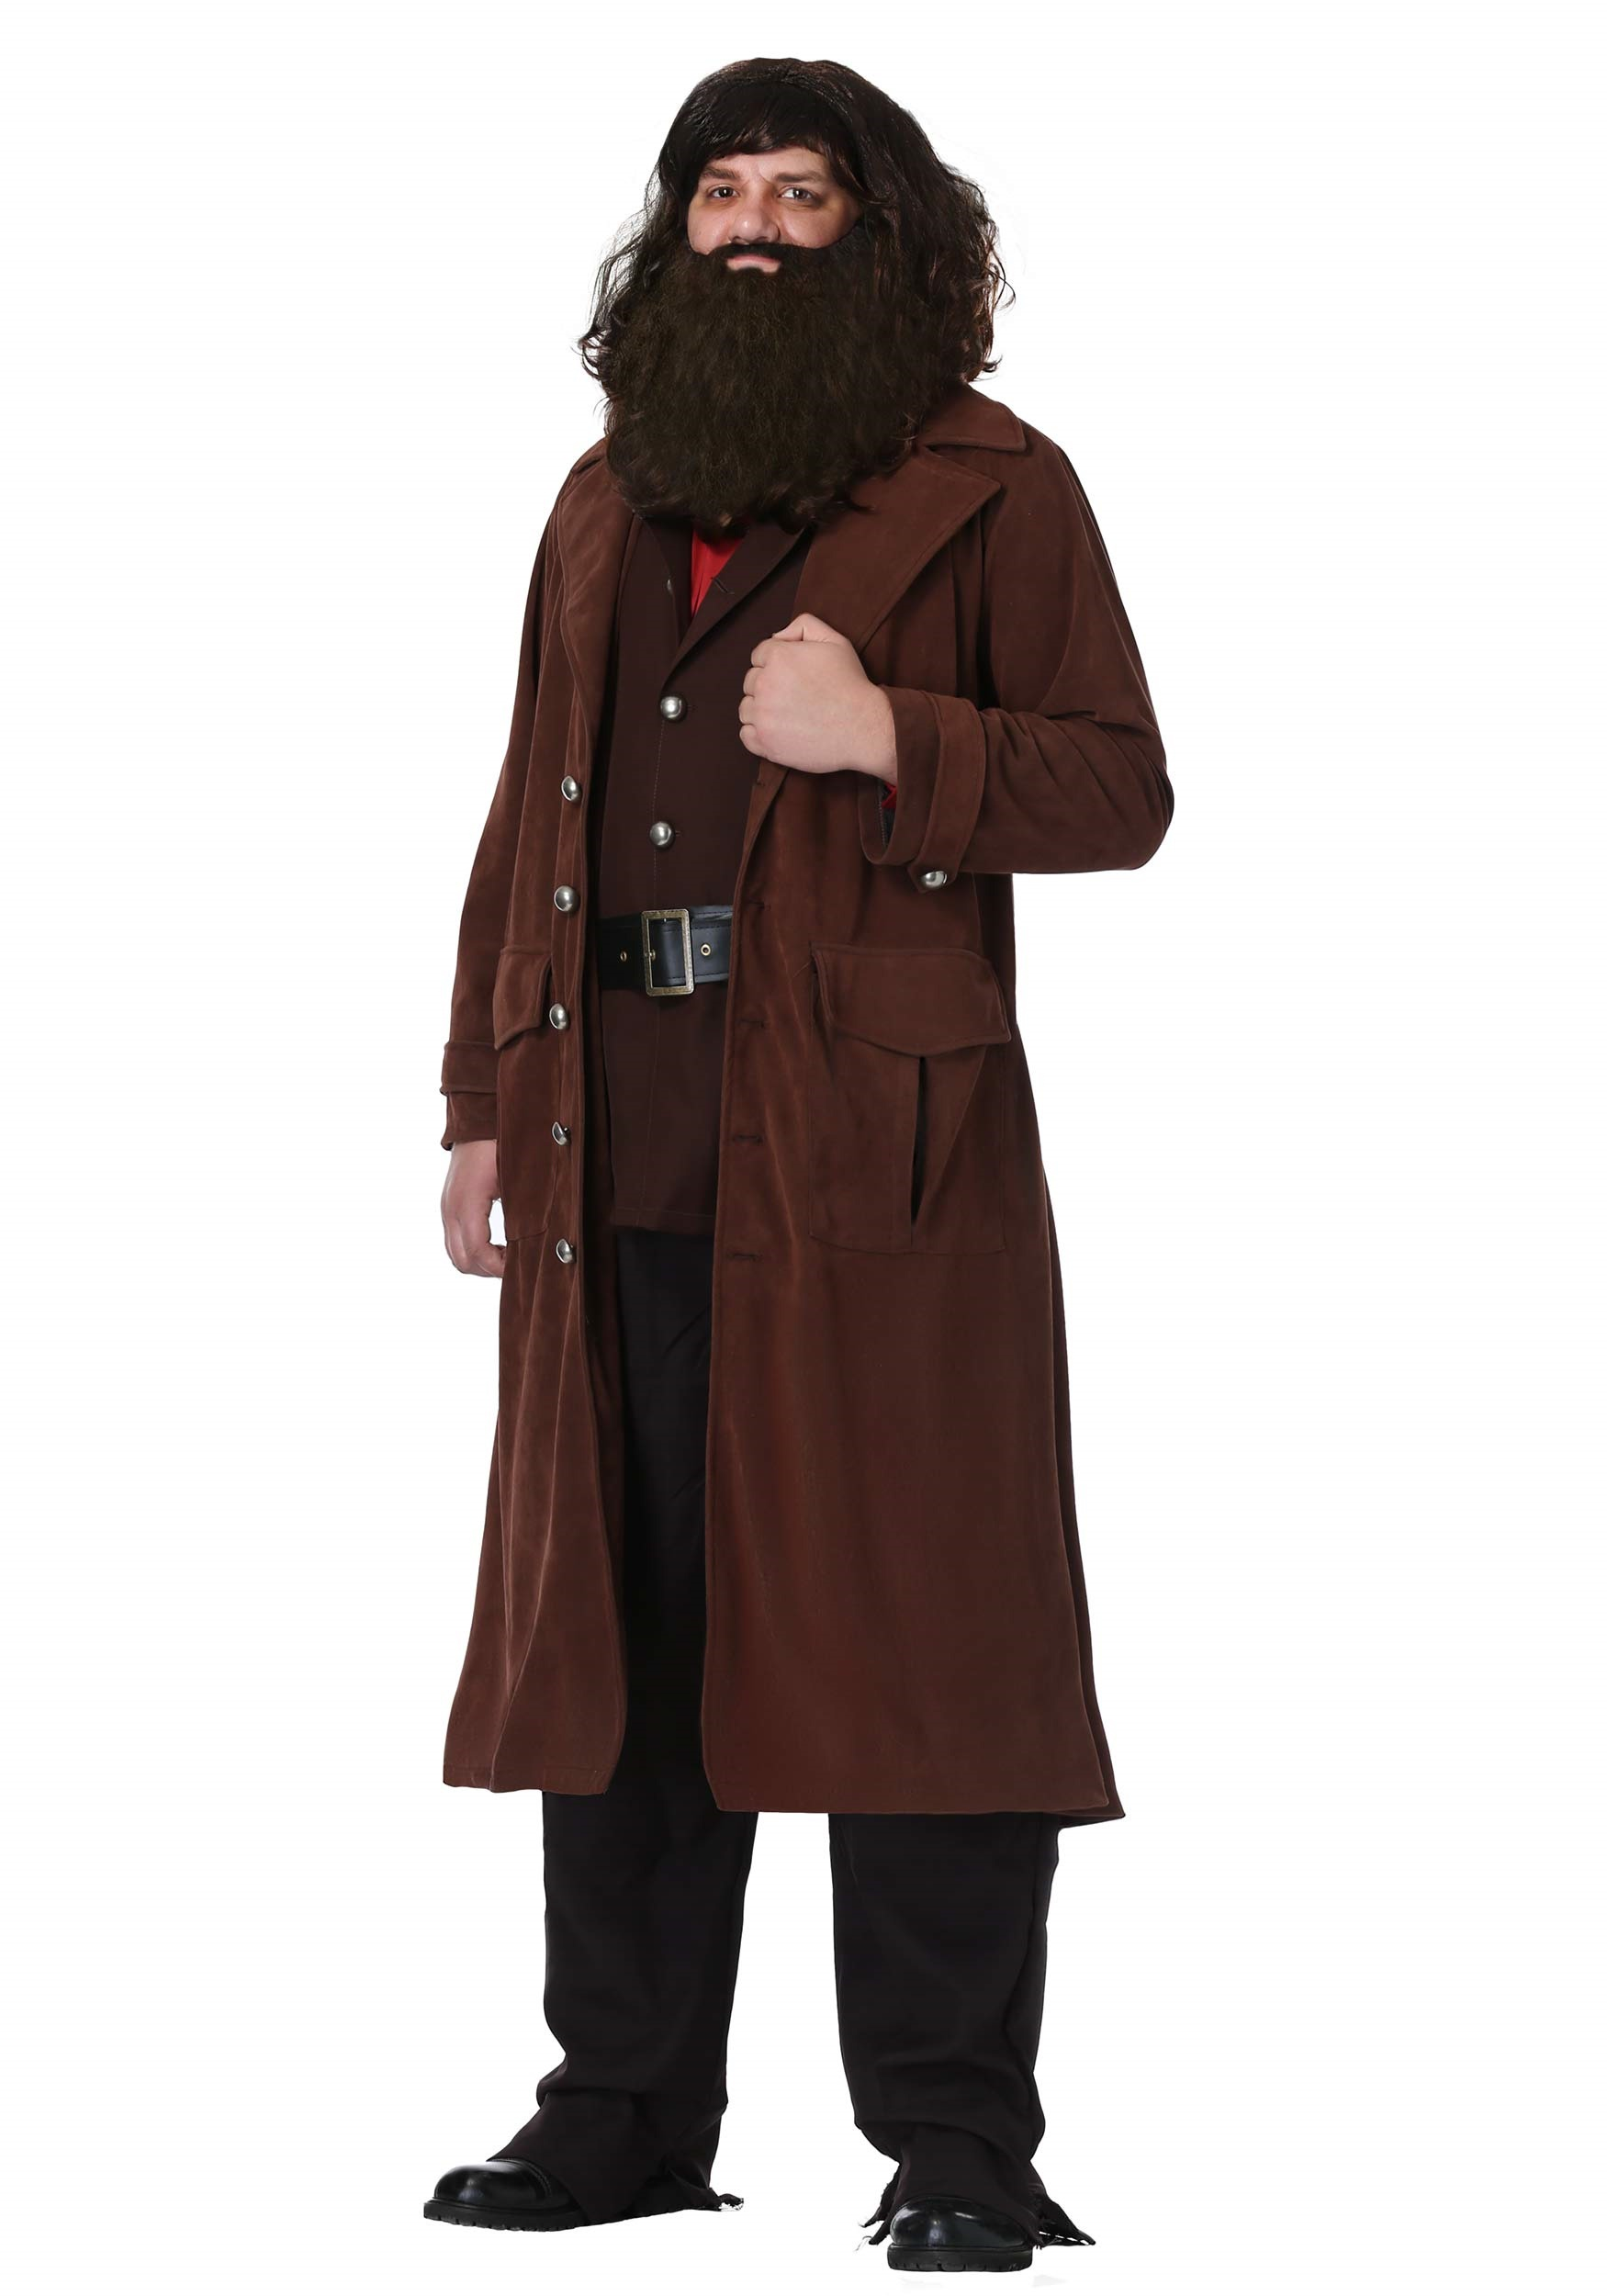 Harry potter costumes accessories halloweencostumes deluxe hagrid adult costume solutioingenieria Images